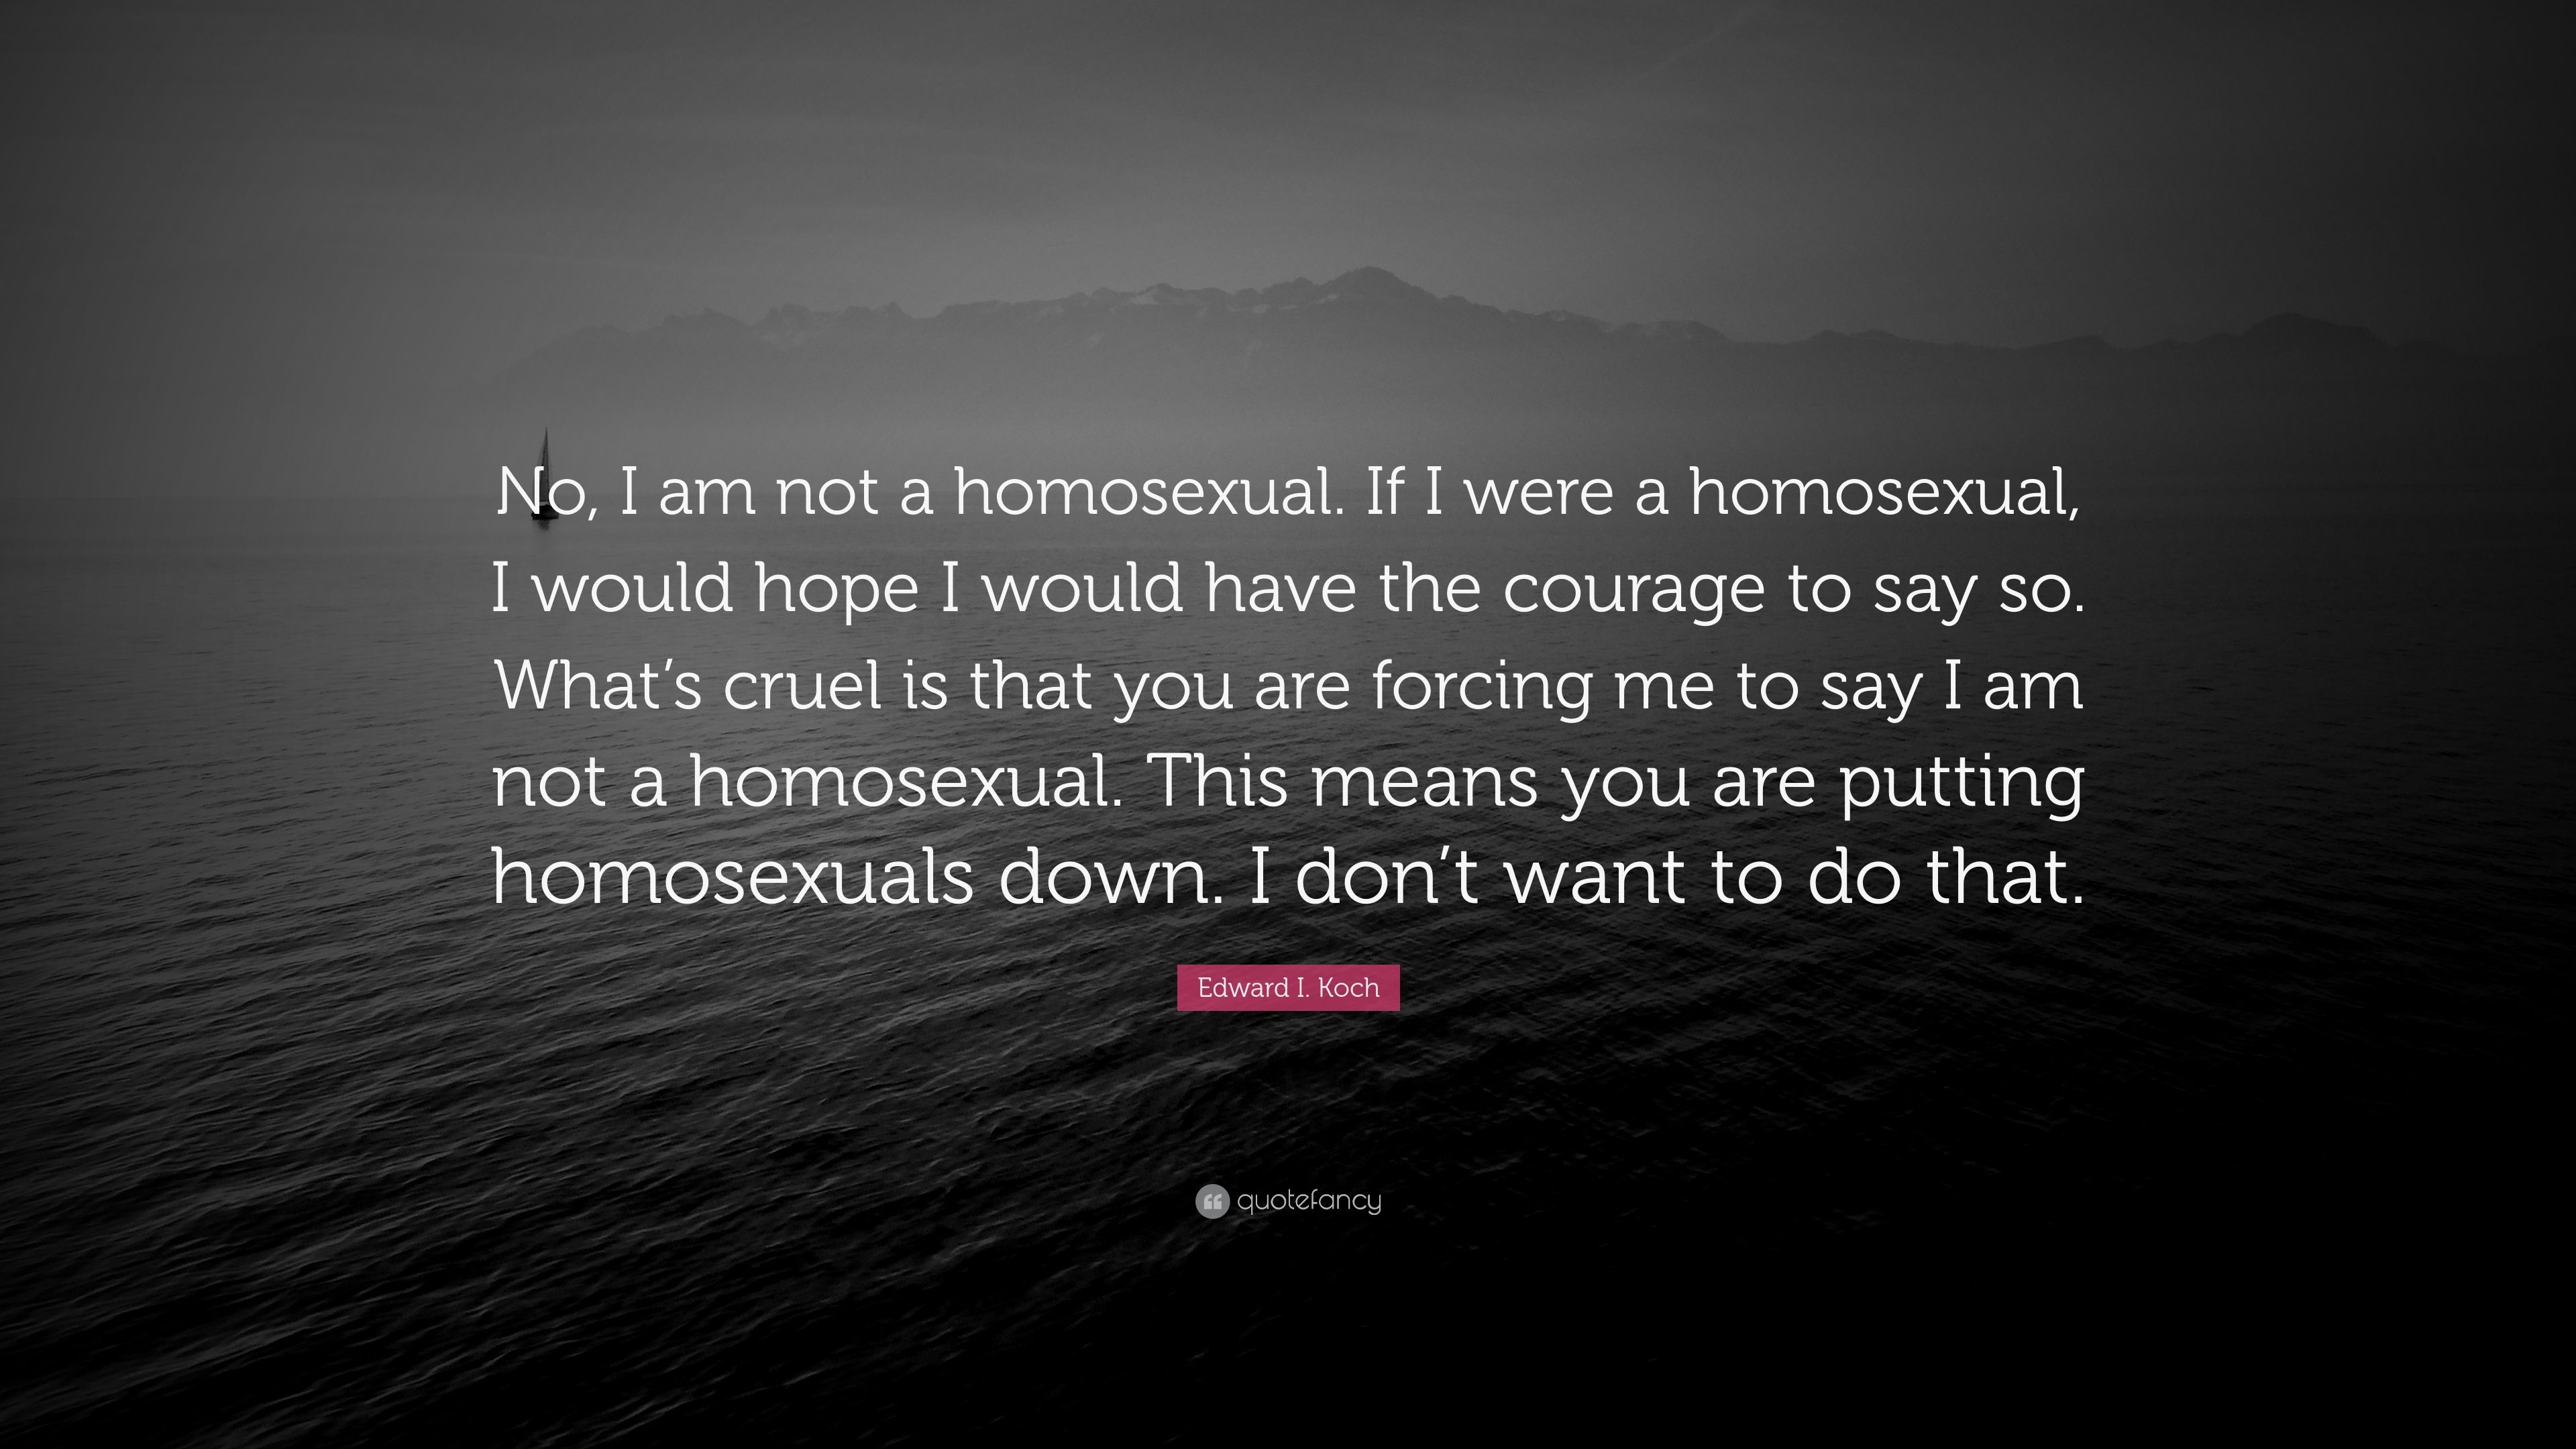 What does homosexual means